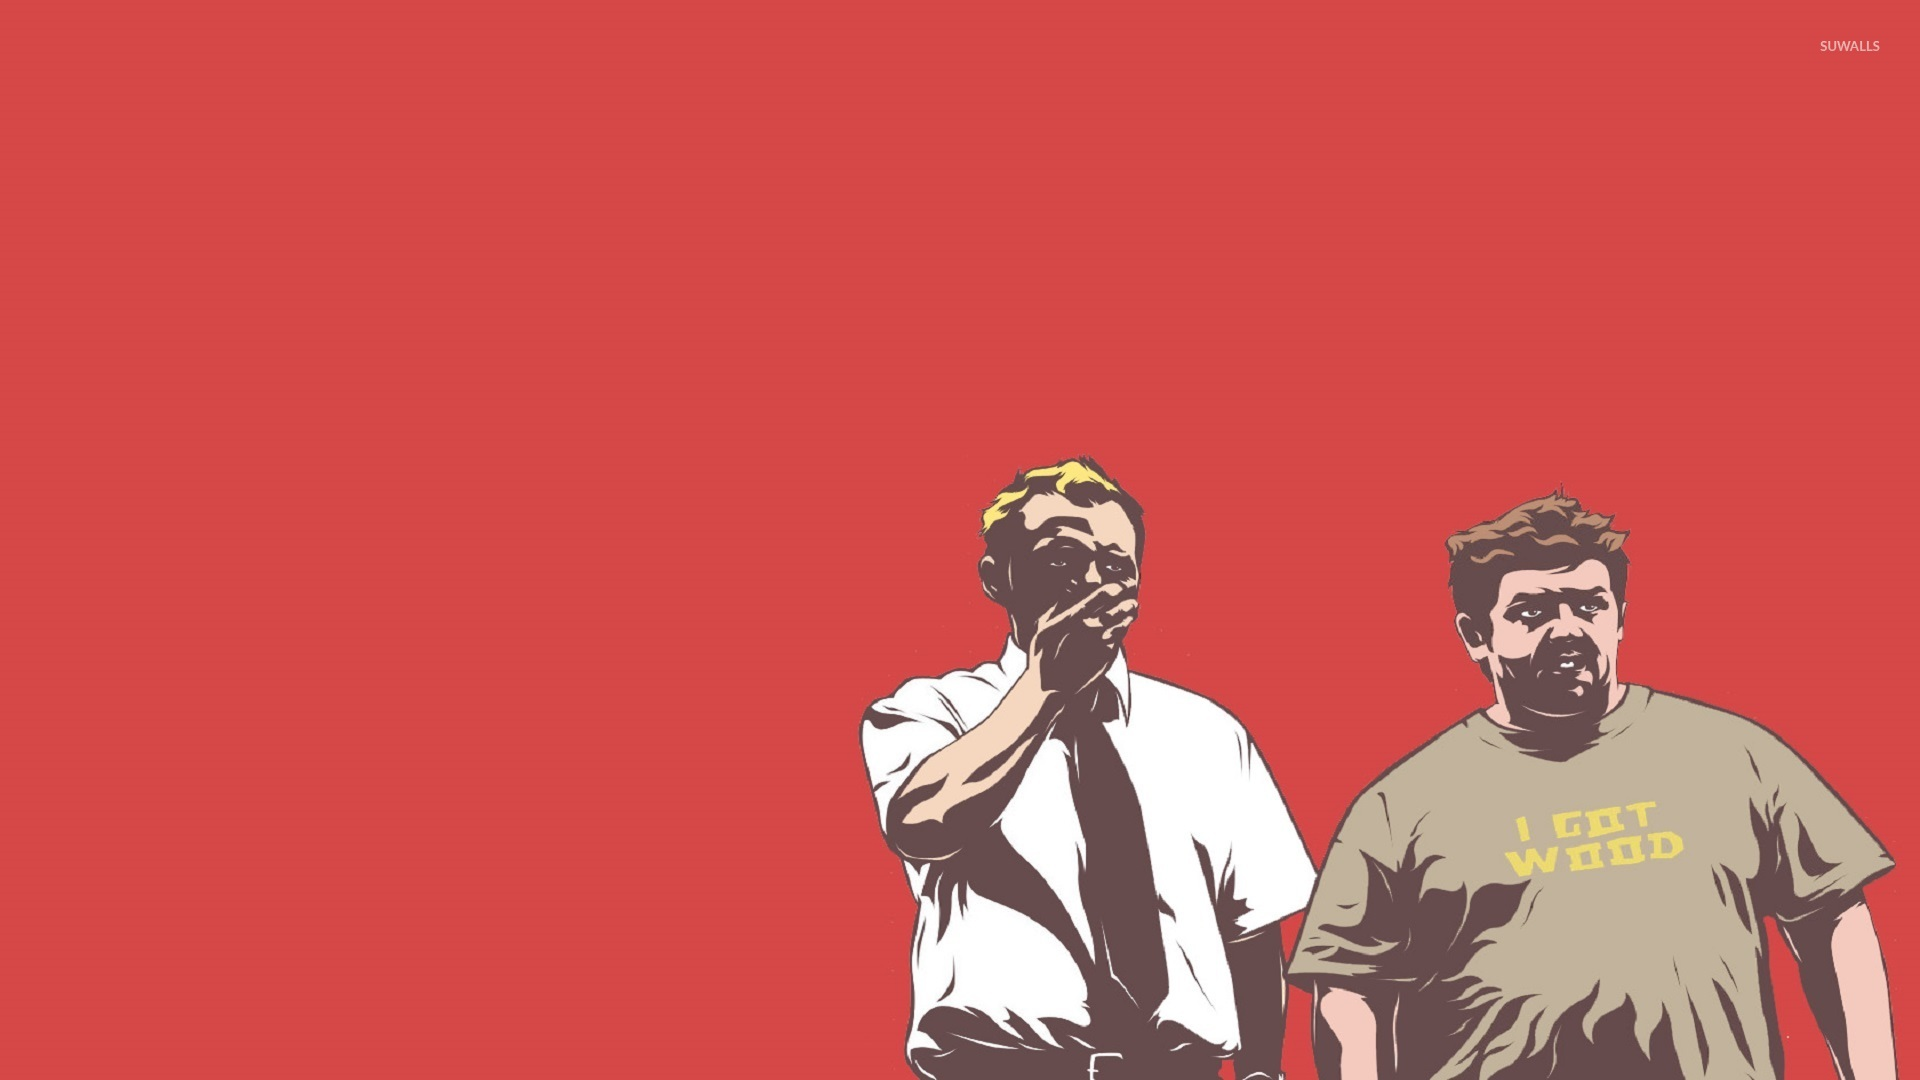 shaun of the dead wallpaper - photo #1